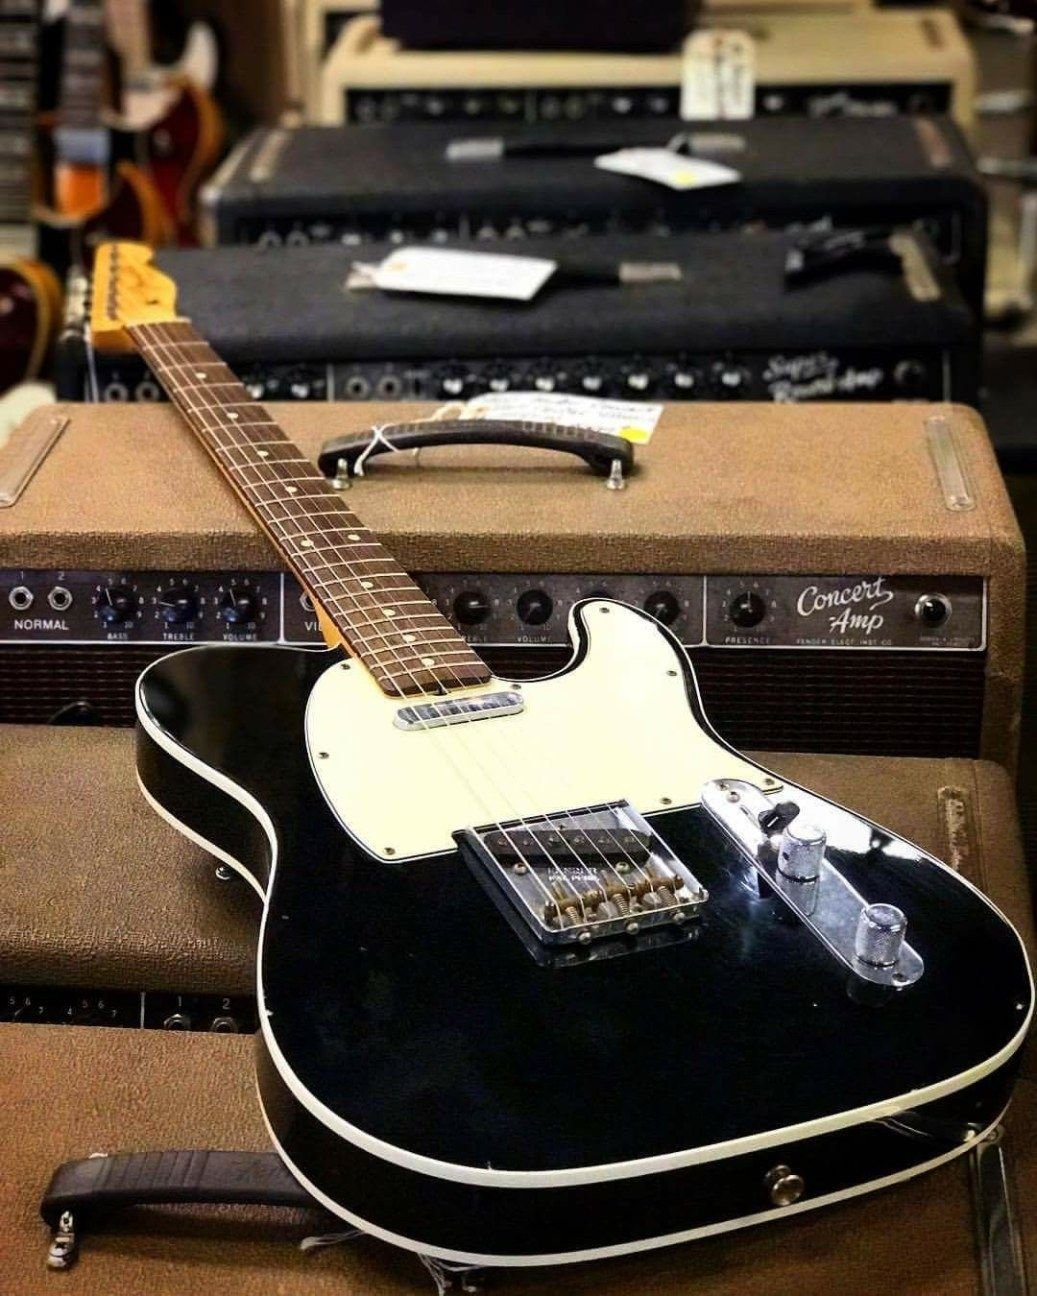 Acoustic And Electric Guitars. Learn to play the acoustic electric guitar by using these simple to follow recommendations. Trying to play an instrument is simple to learn, and can open up so many musical doors. #electricguitars